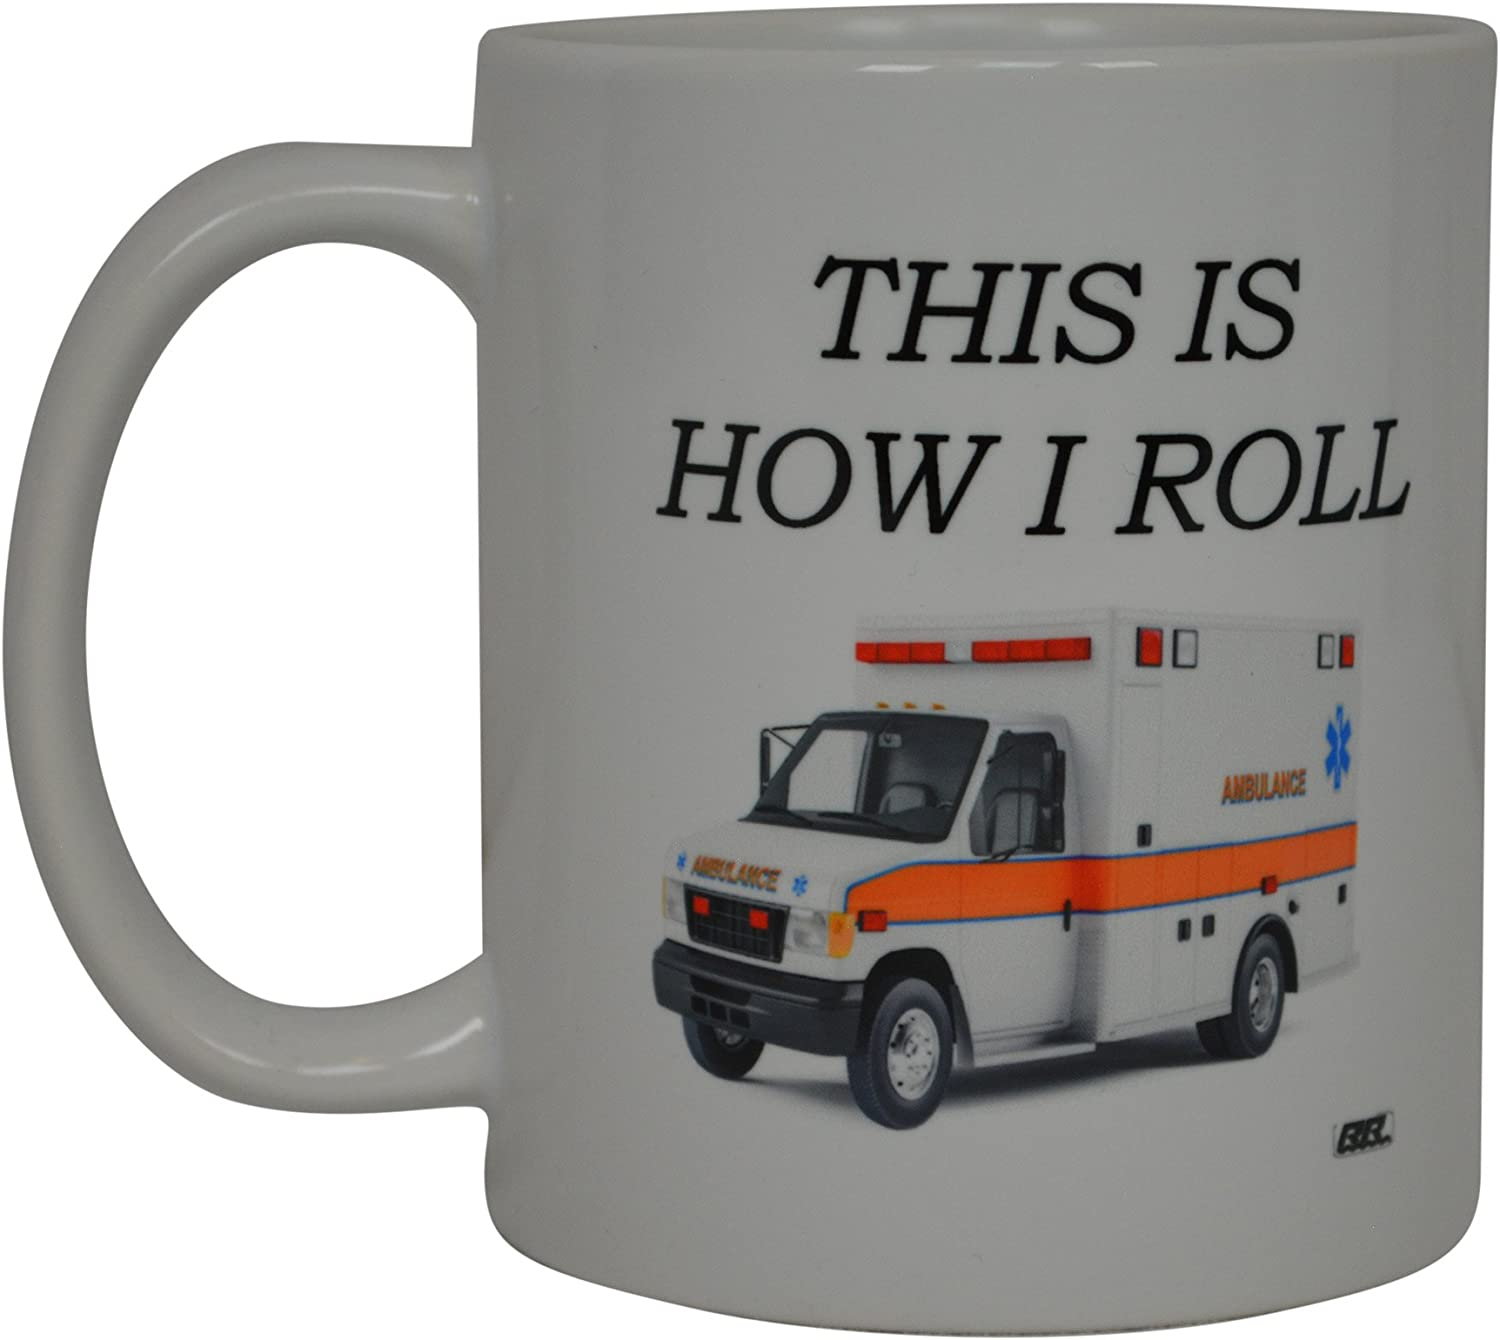 EMT Funny Coffee Mug This Is How Cup Over item handling ☆ I Roll Novelty Super beauty product restock quality top Gift Great